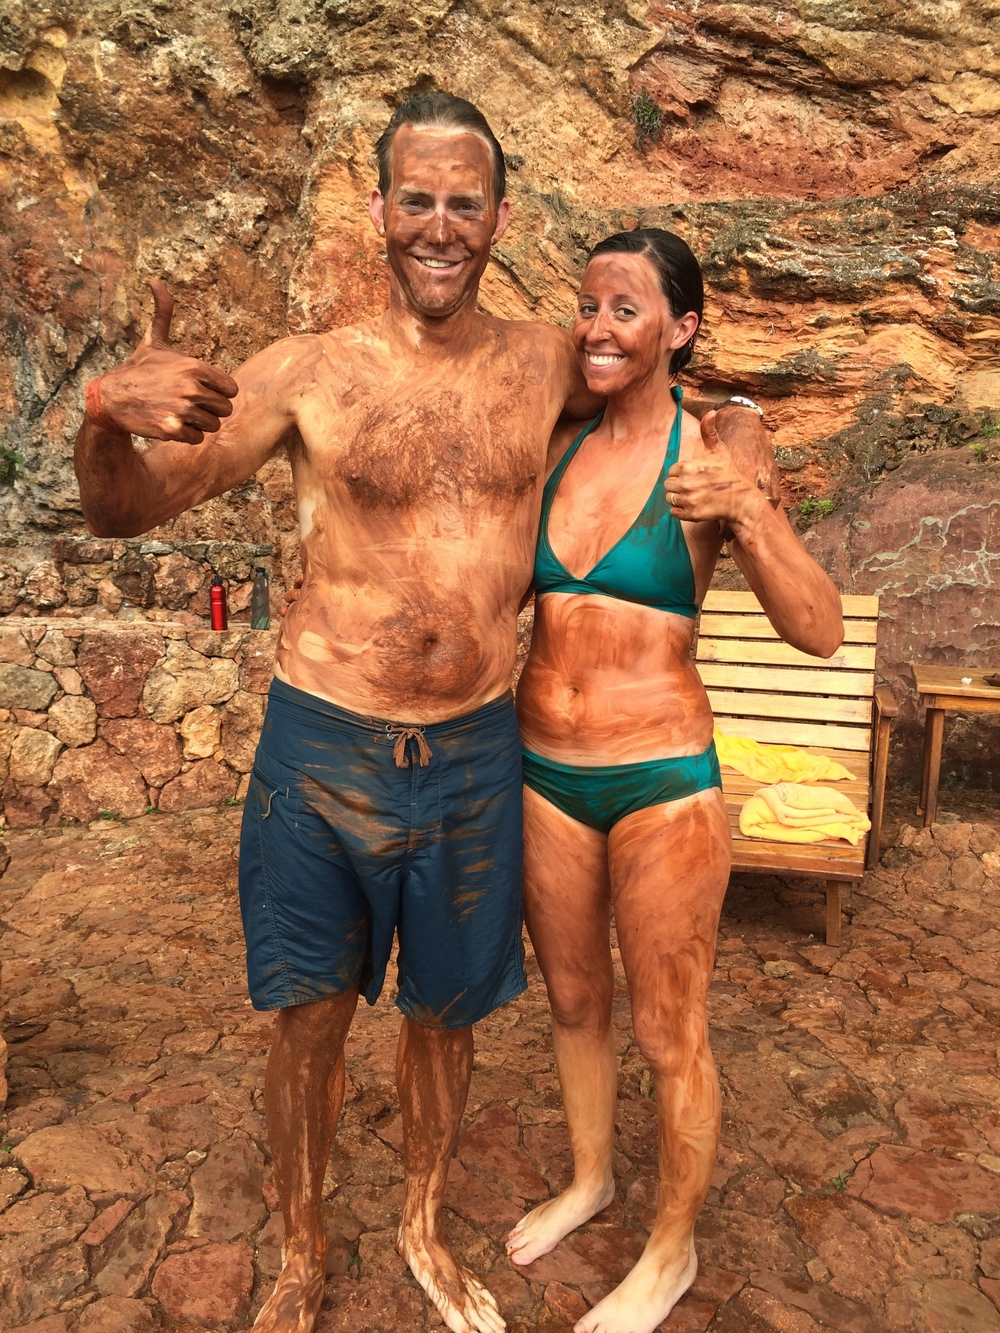 Slathering each other with mud in Ecuador was definitely a memorable honeymoon experience.